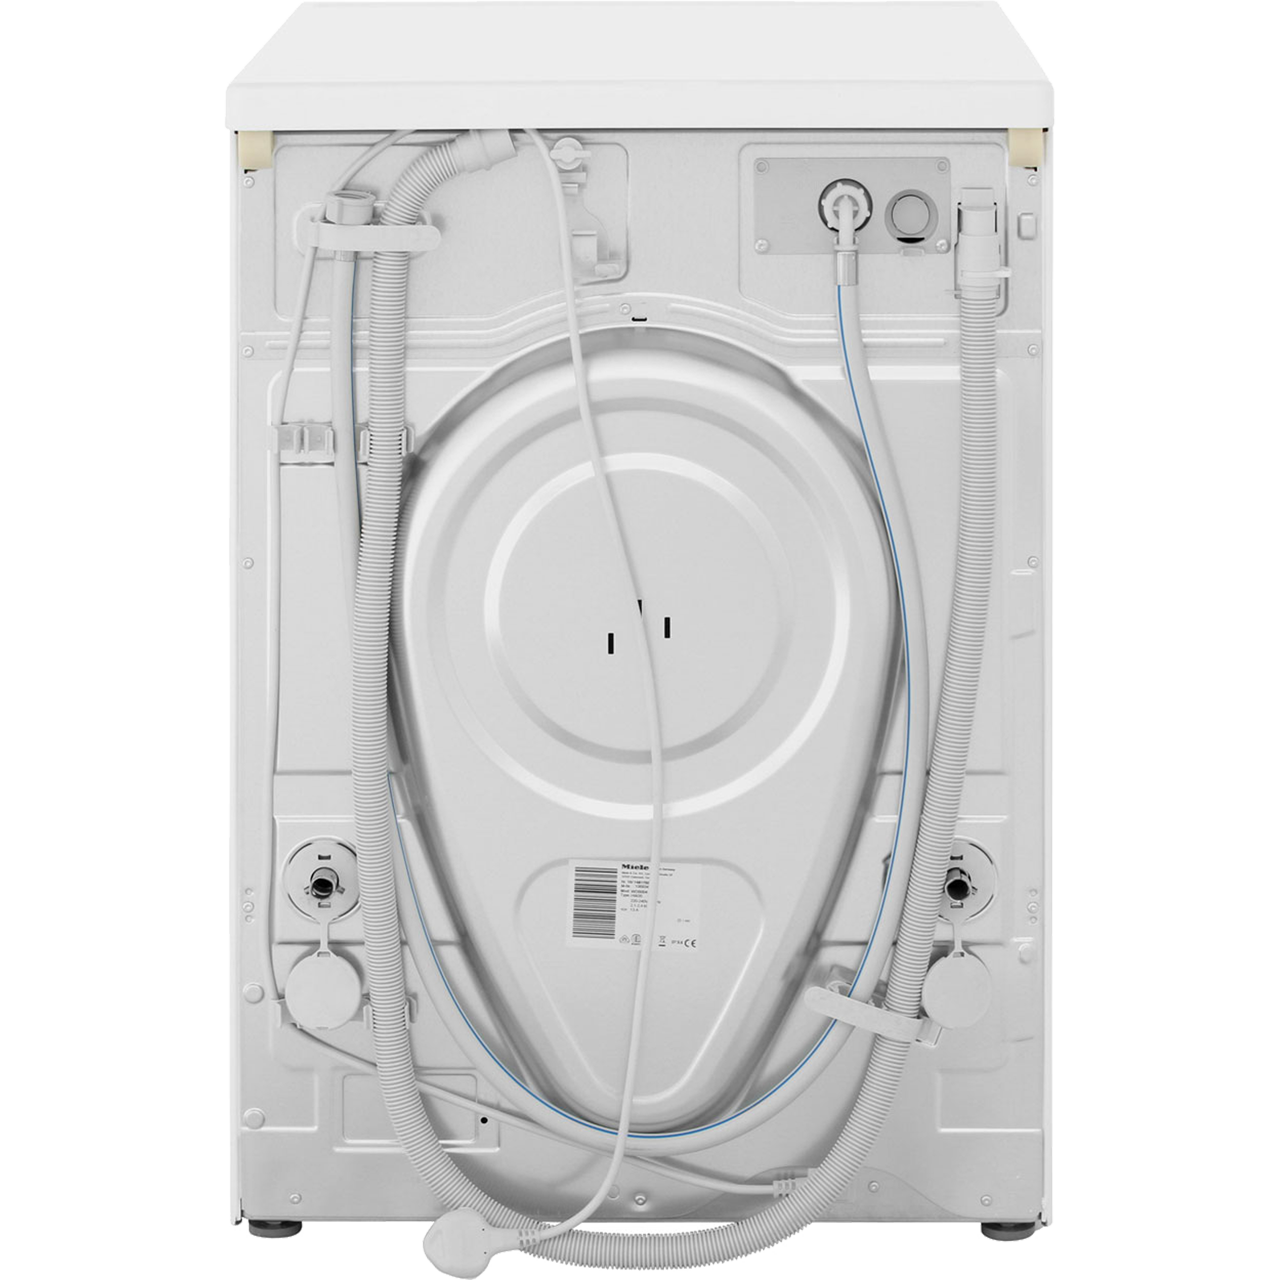 Miele W1 WDB004 7Kg Washing Machine with 1400 rpm - White - A+++ Rated